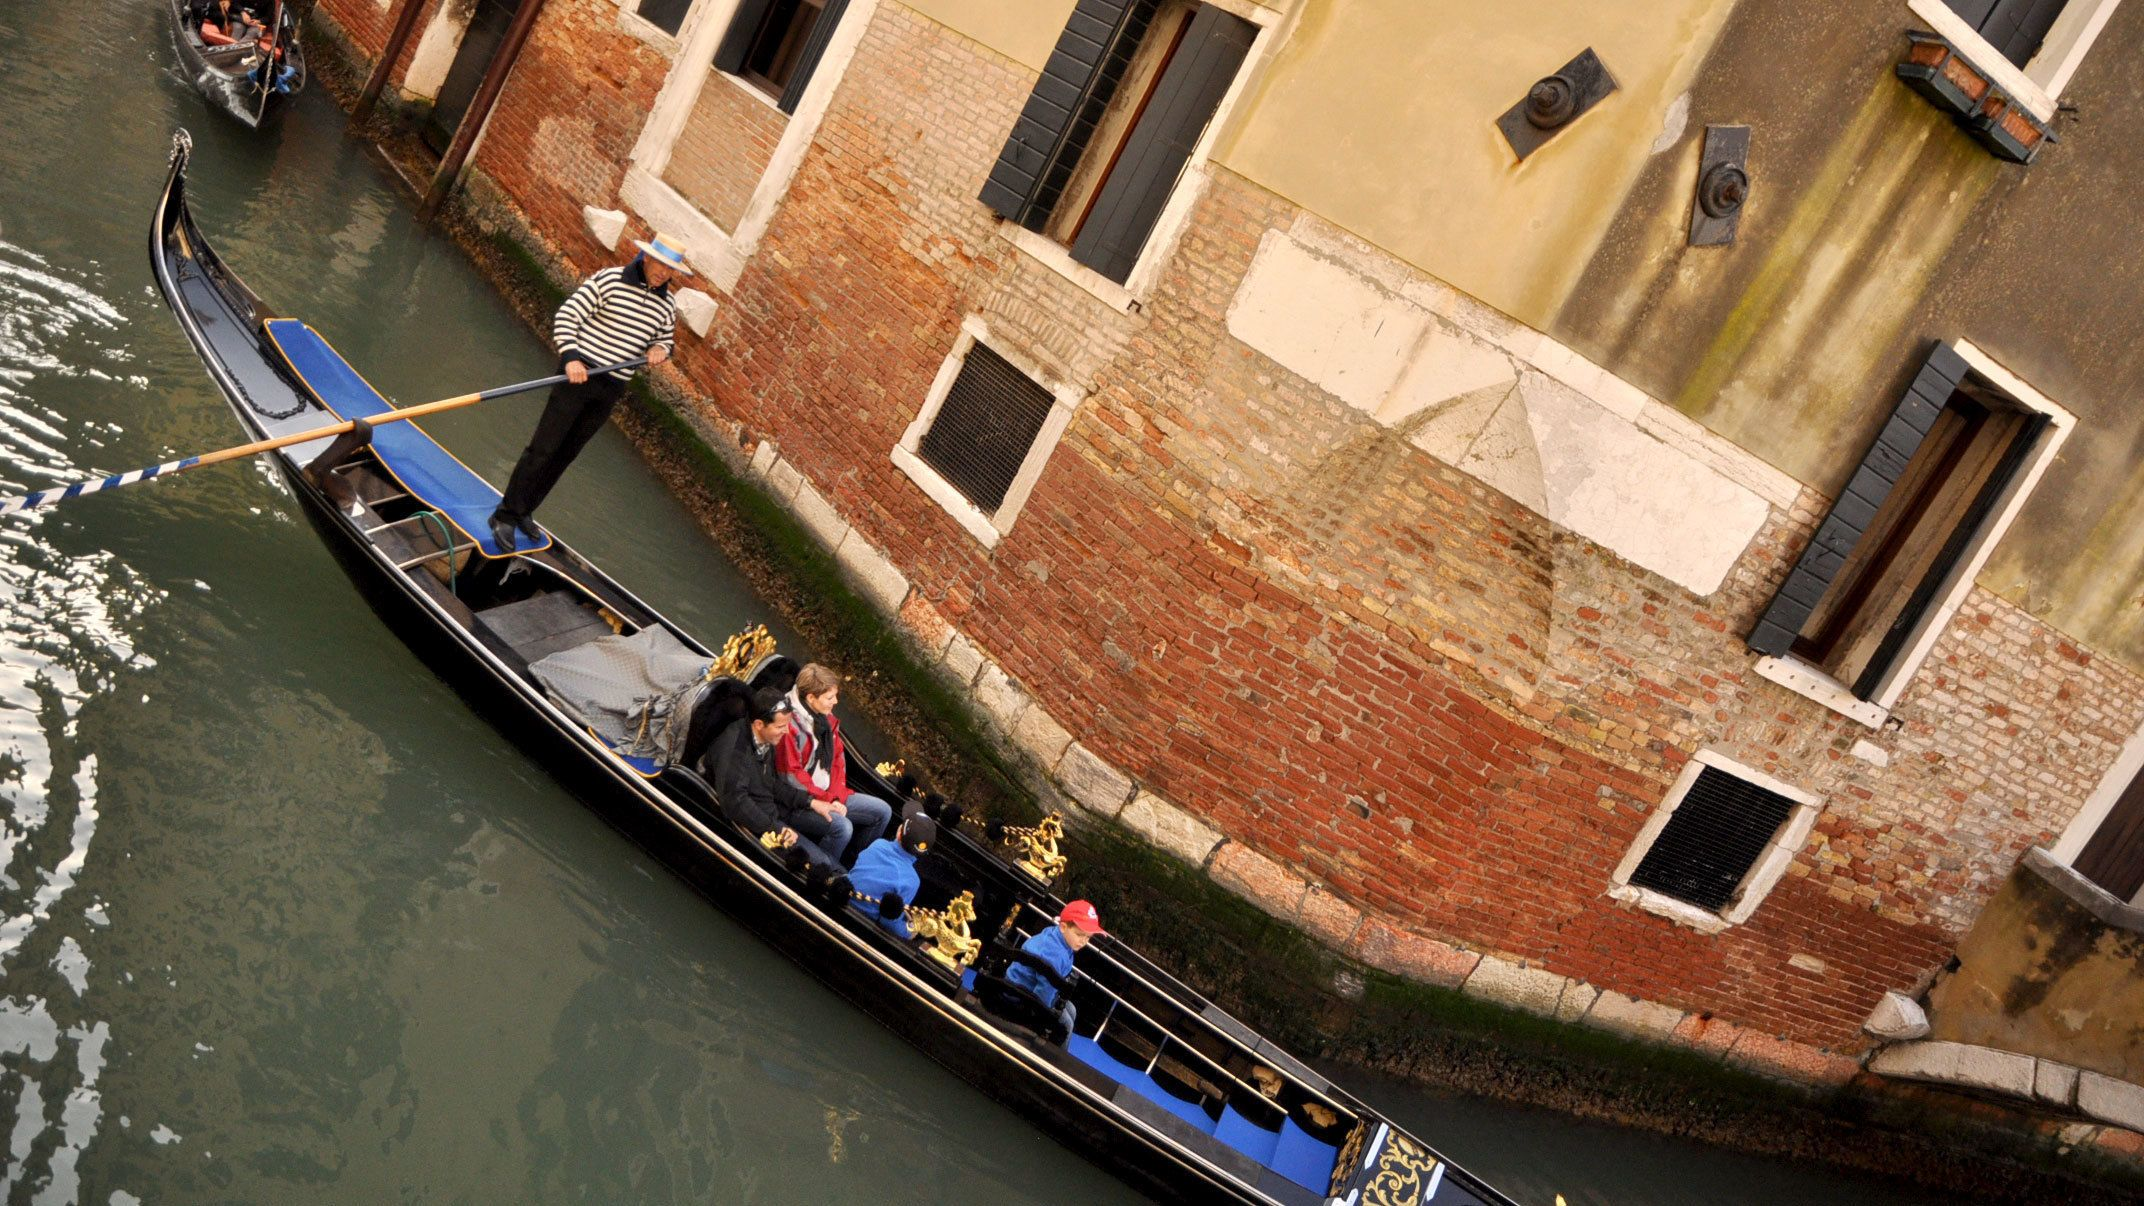 gondola turning a corner in a canal in Venice Italy